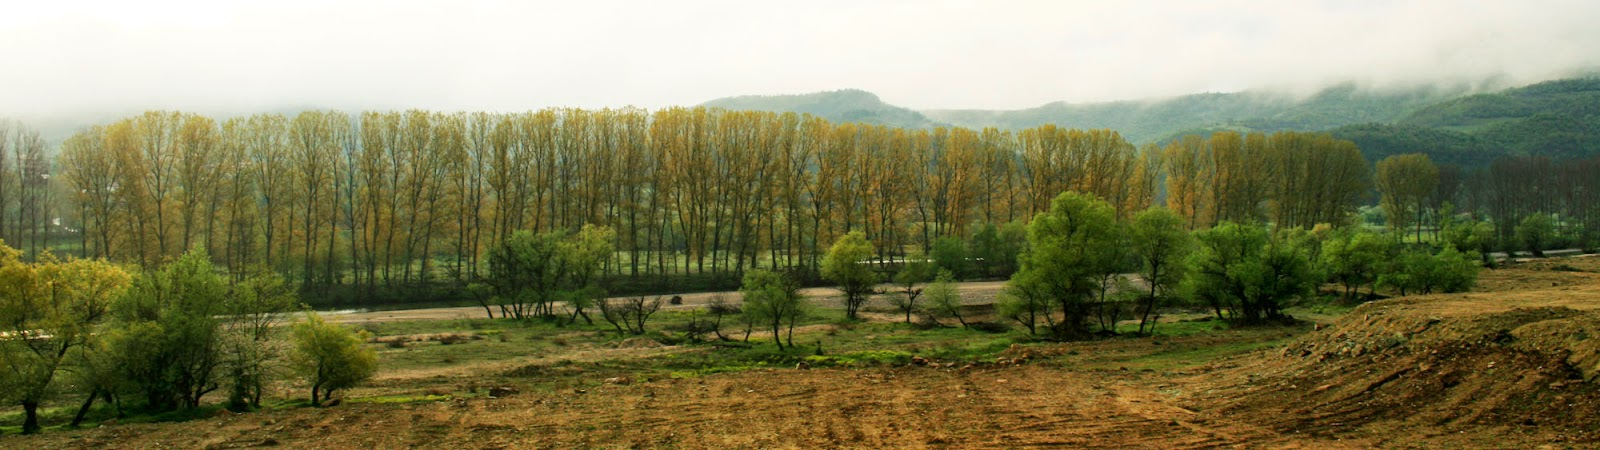 Long stand of poplar trees along the river bank